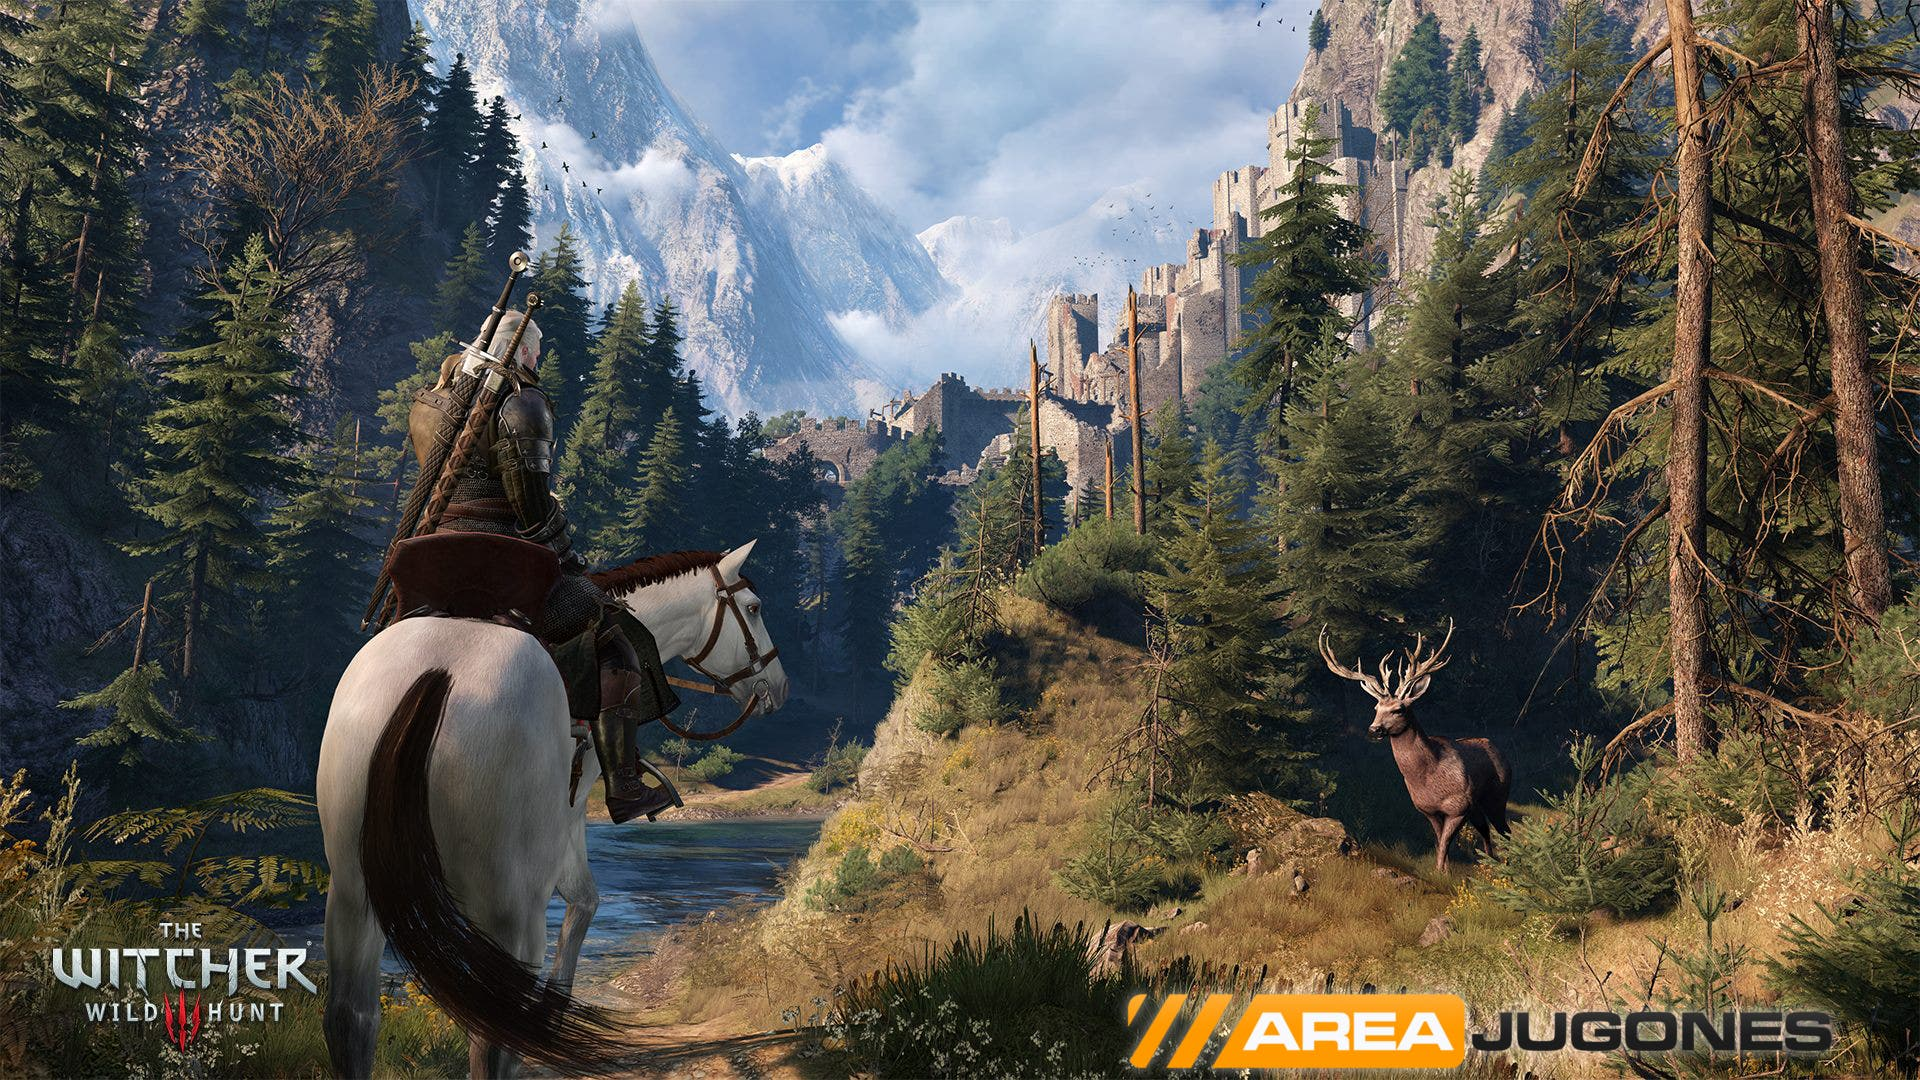 The Witcher 3 - Captura 22 de marzo Gamestar - Areajugones